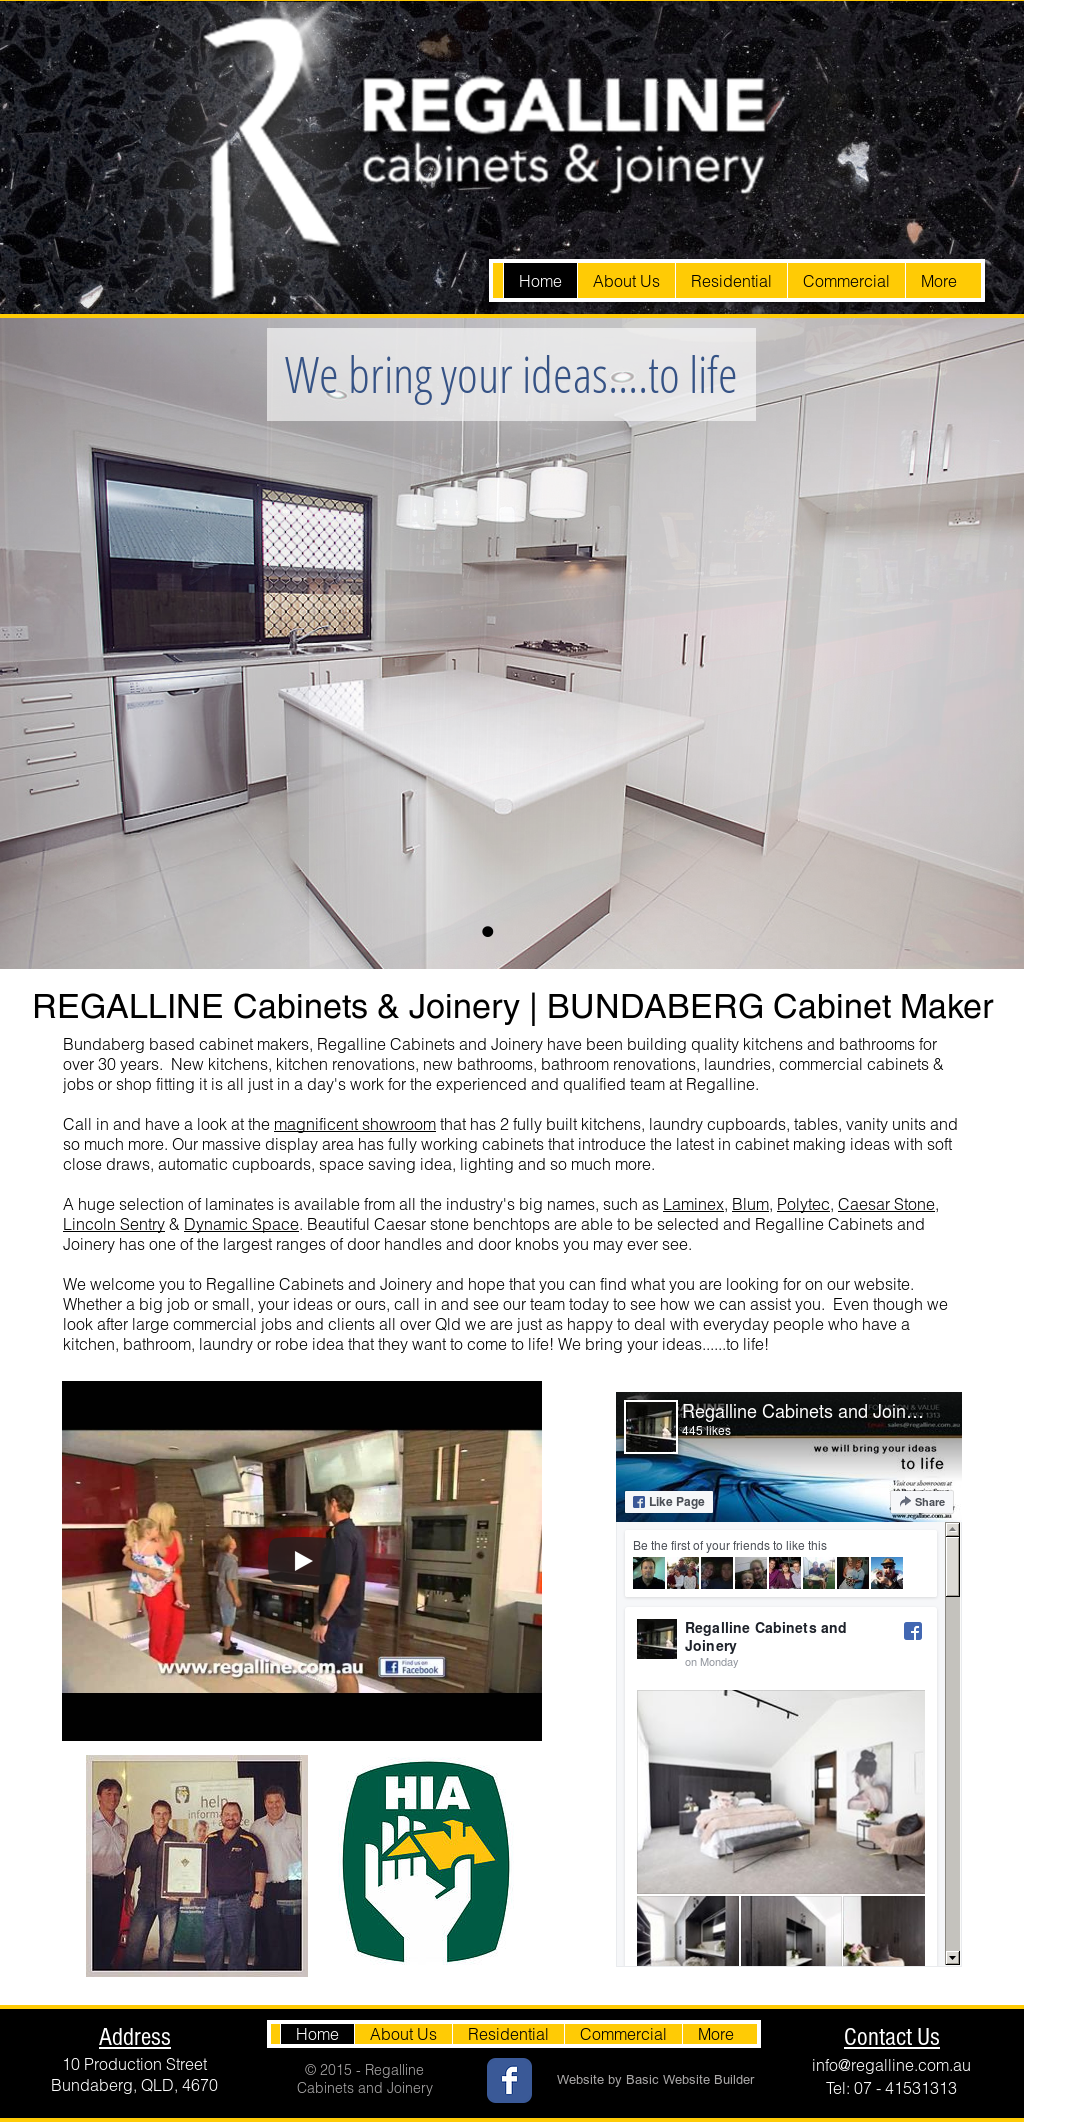 Regalline Cabinets & Joinery Competitors, Revenue and